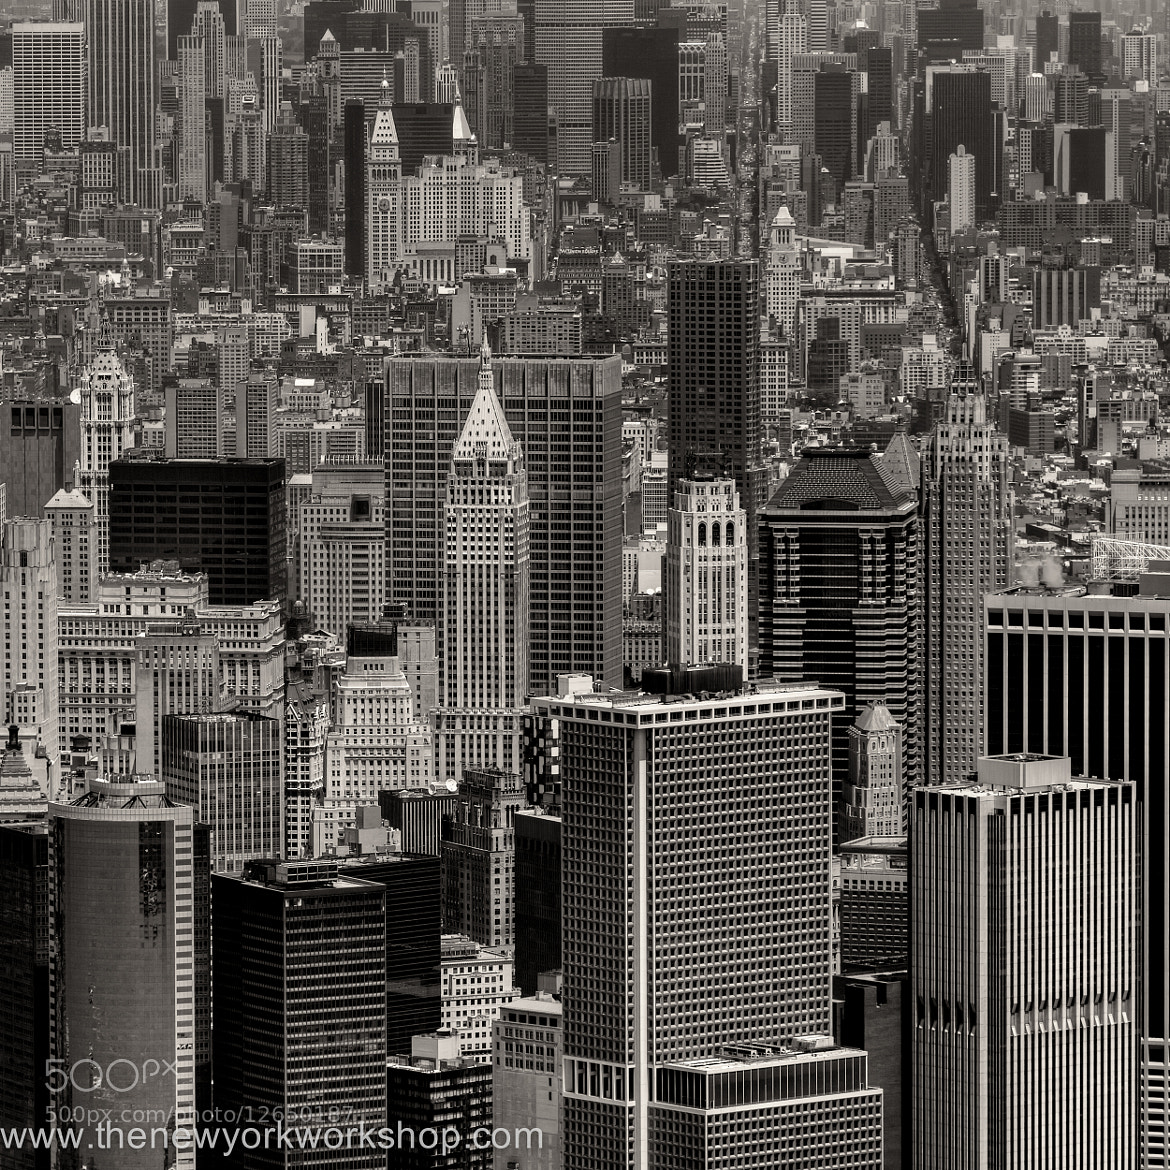 Photograph Manhattan 6 miles digest by regis boileau on 500px